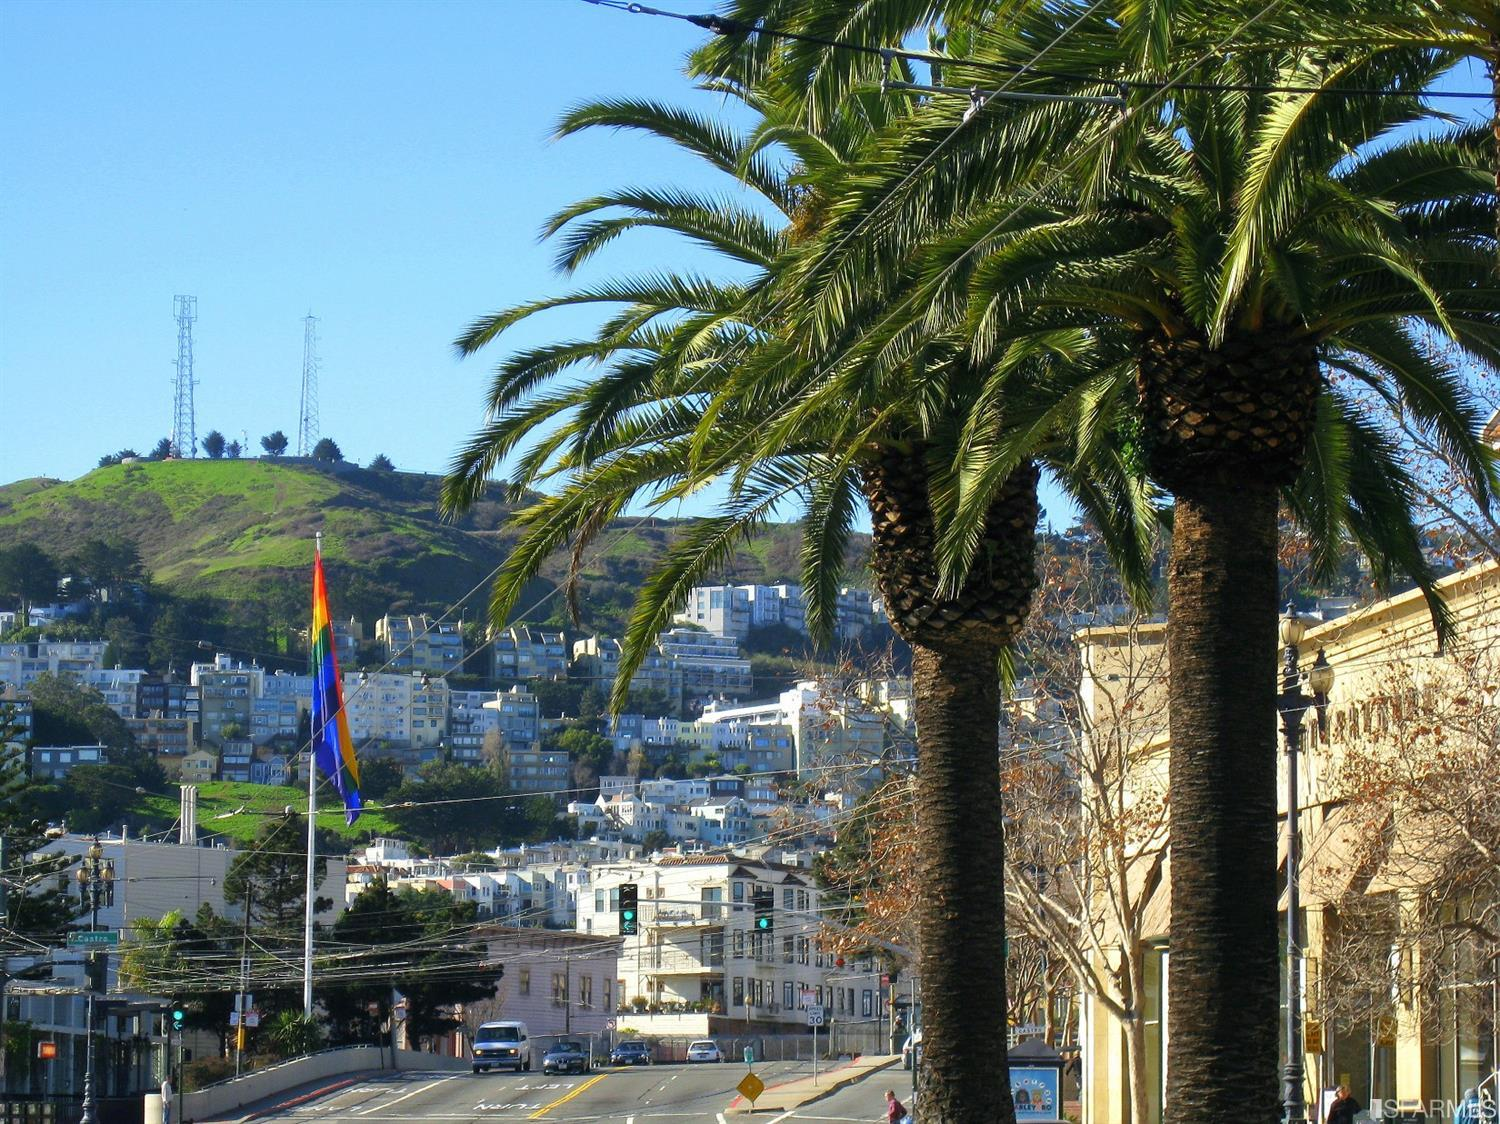 Just 3 walking blocks to the Castro. Fantastic location convenient to the Valencia Corridor, the Castro and Noe Valley, with exc